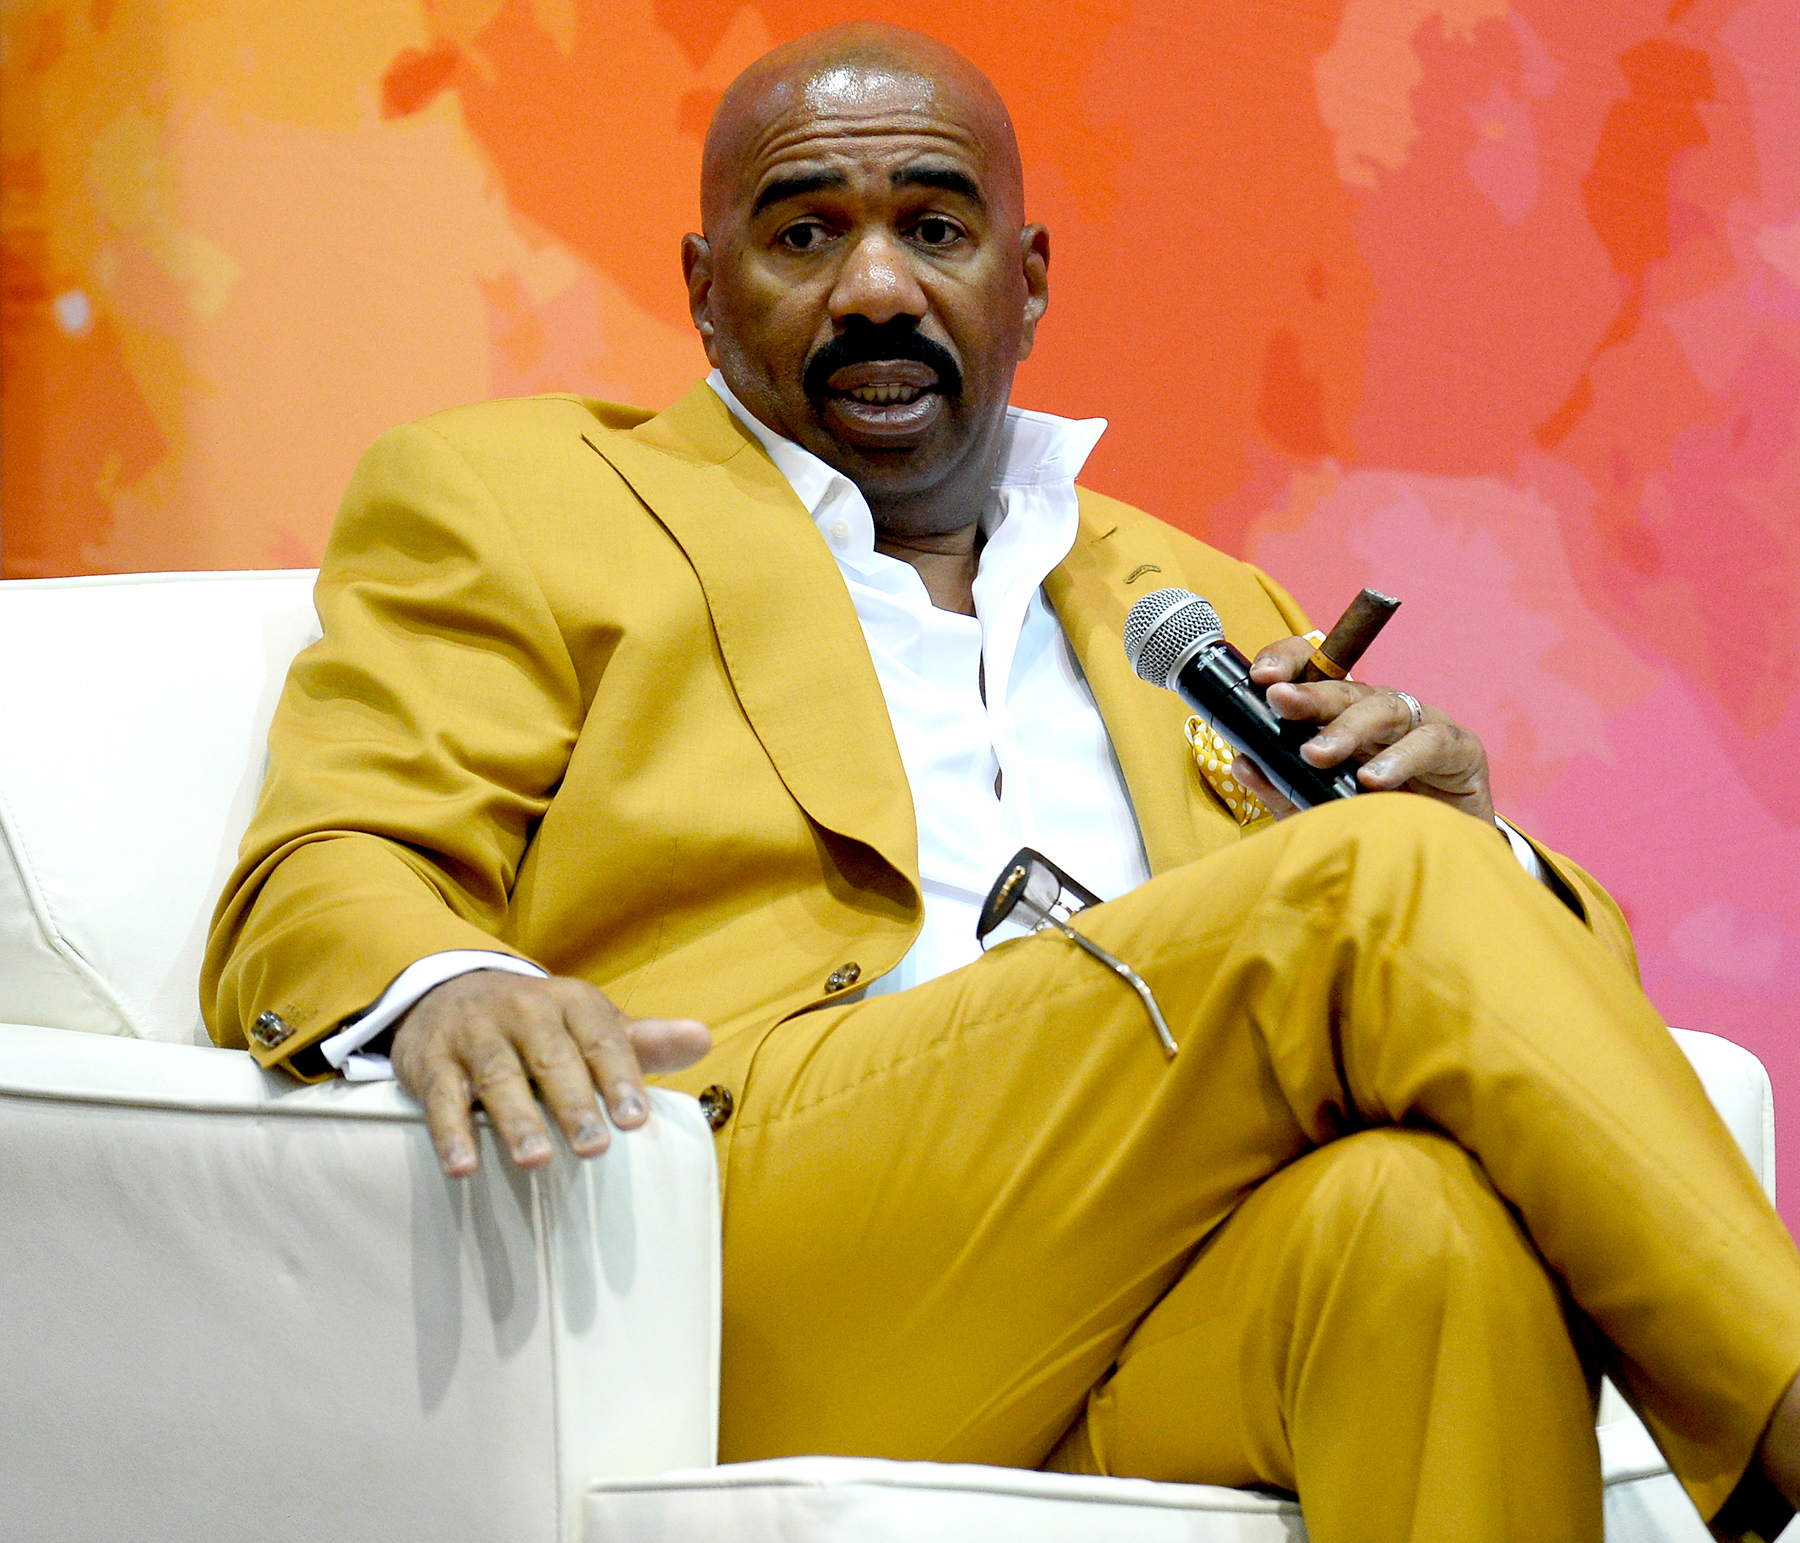 Steve Harvey speaks at the State Farm Color Full Lives Art Gallery during the 2016 State Farm Neighborhood Awards at Mandalay Bay Resort and Casino on July 22, 2016 in Las Vegas, Nevada.